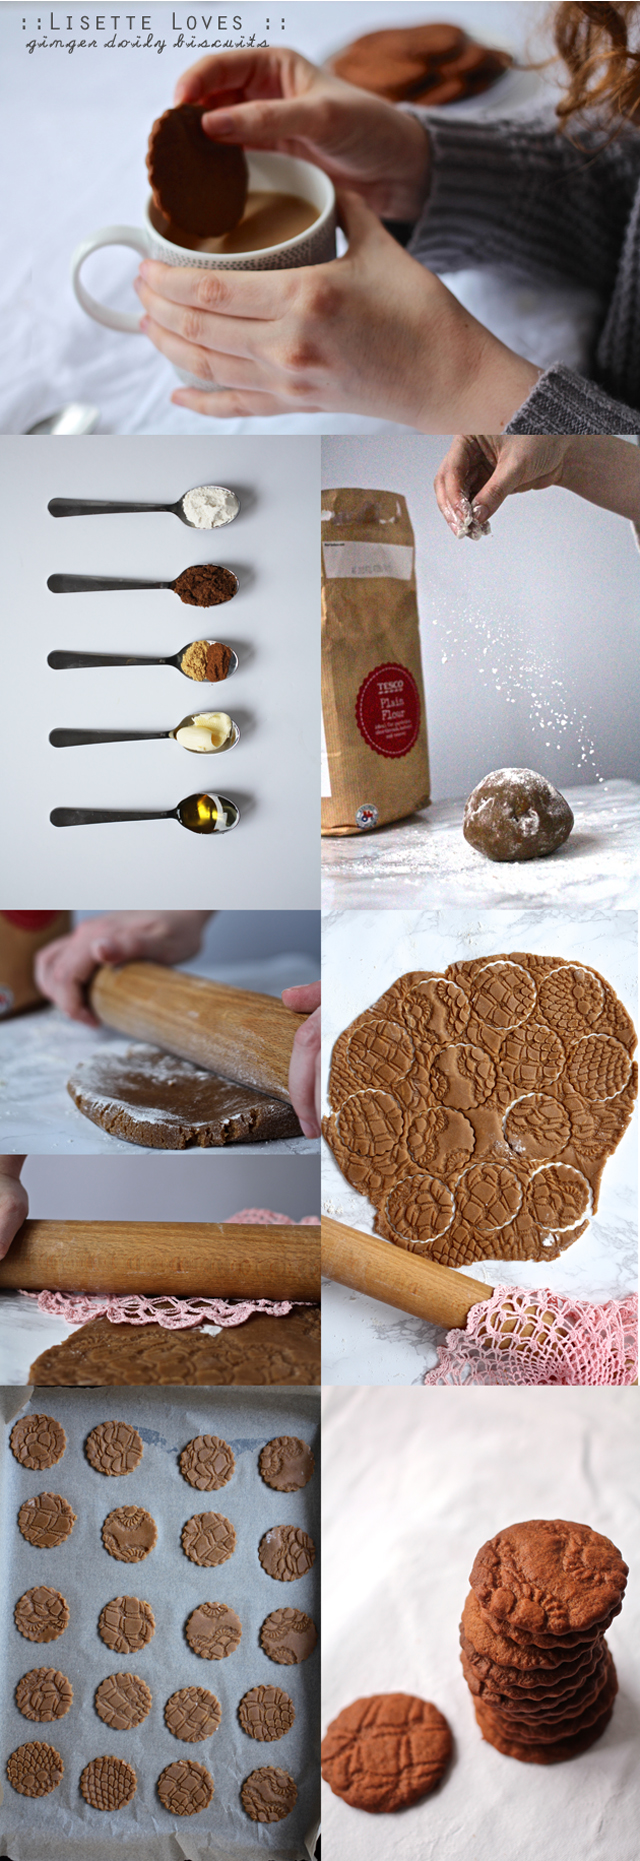 ginger doily cookies